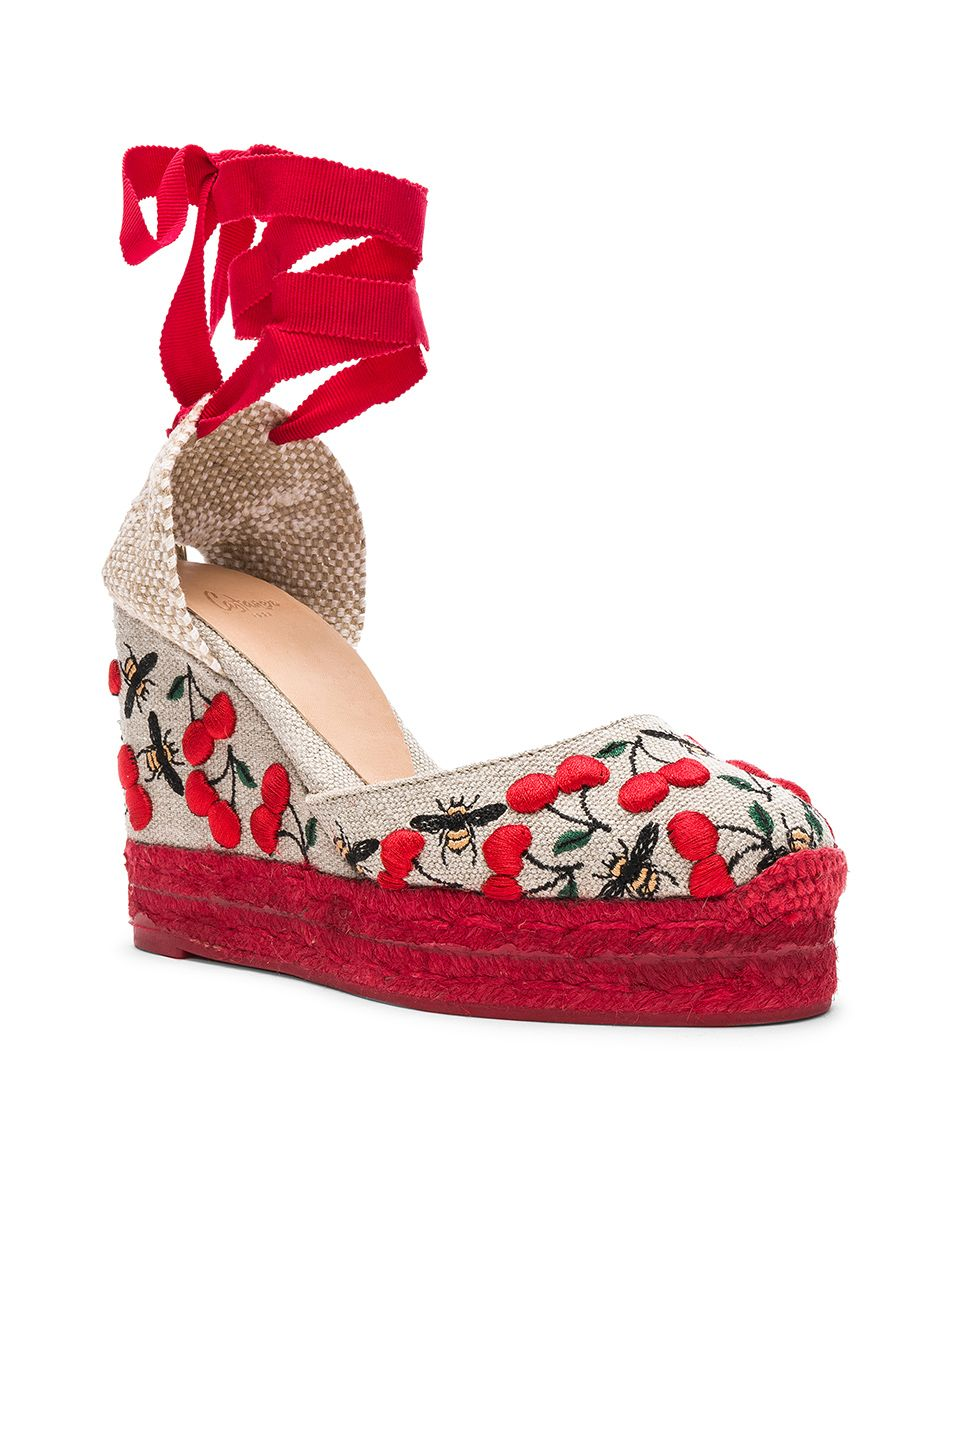 Castaner Embroidered Canvas Carina Espadrilles in .